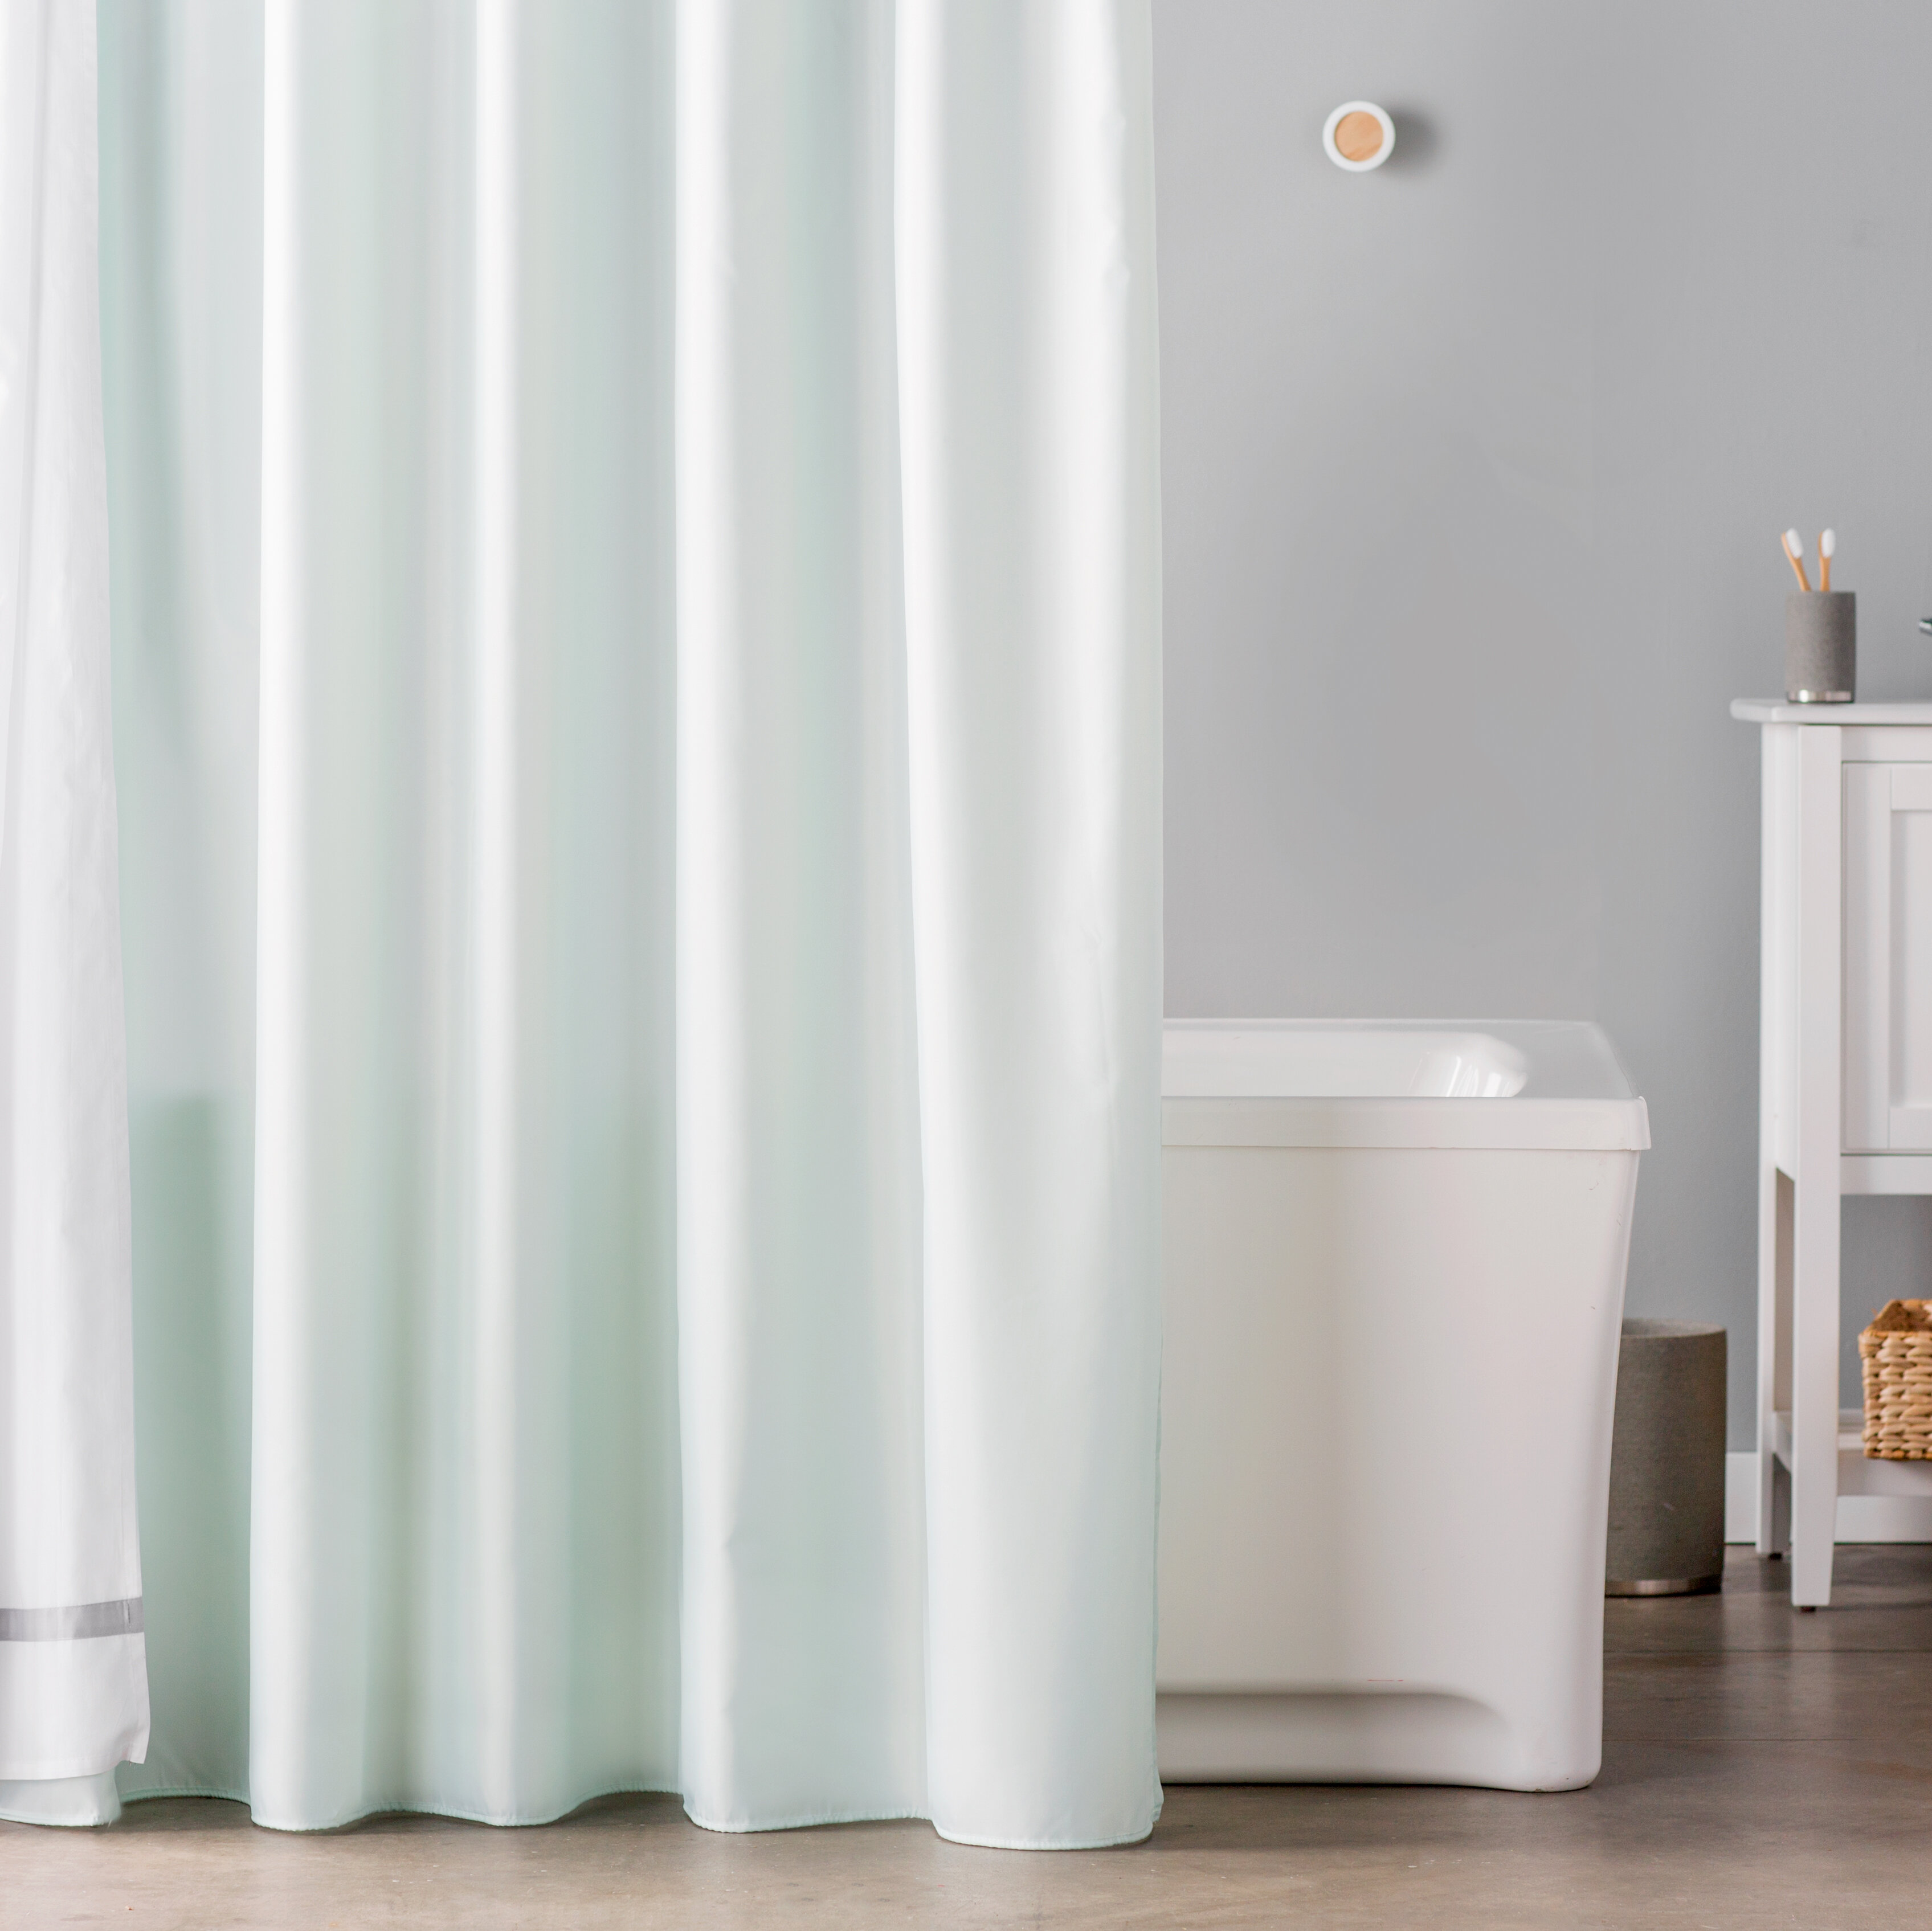 mold curtains fabric farms and resistant manor curtain heavyweight qu water milkweed mildew products shower liner quality hotel